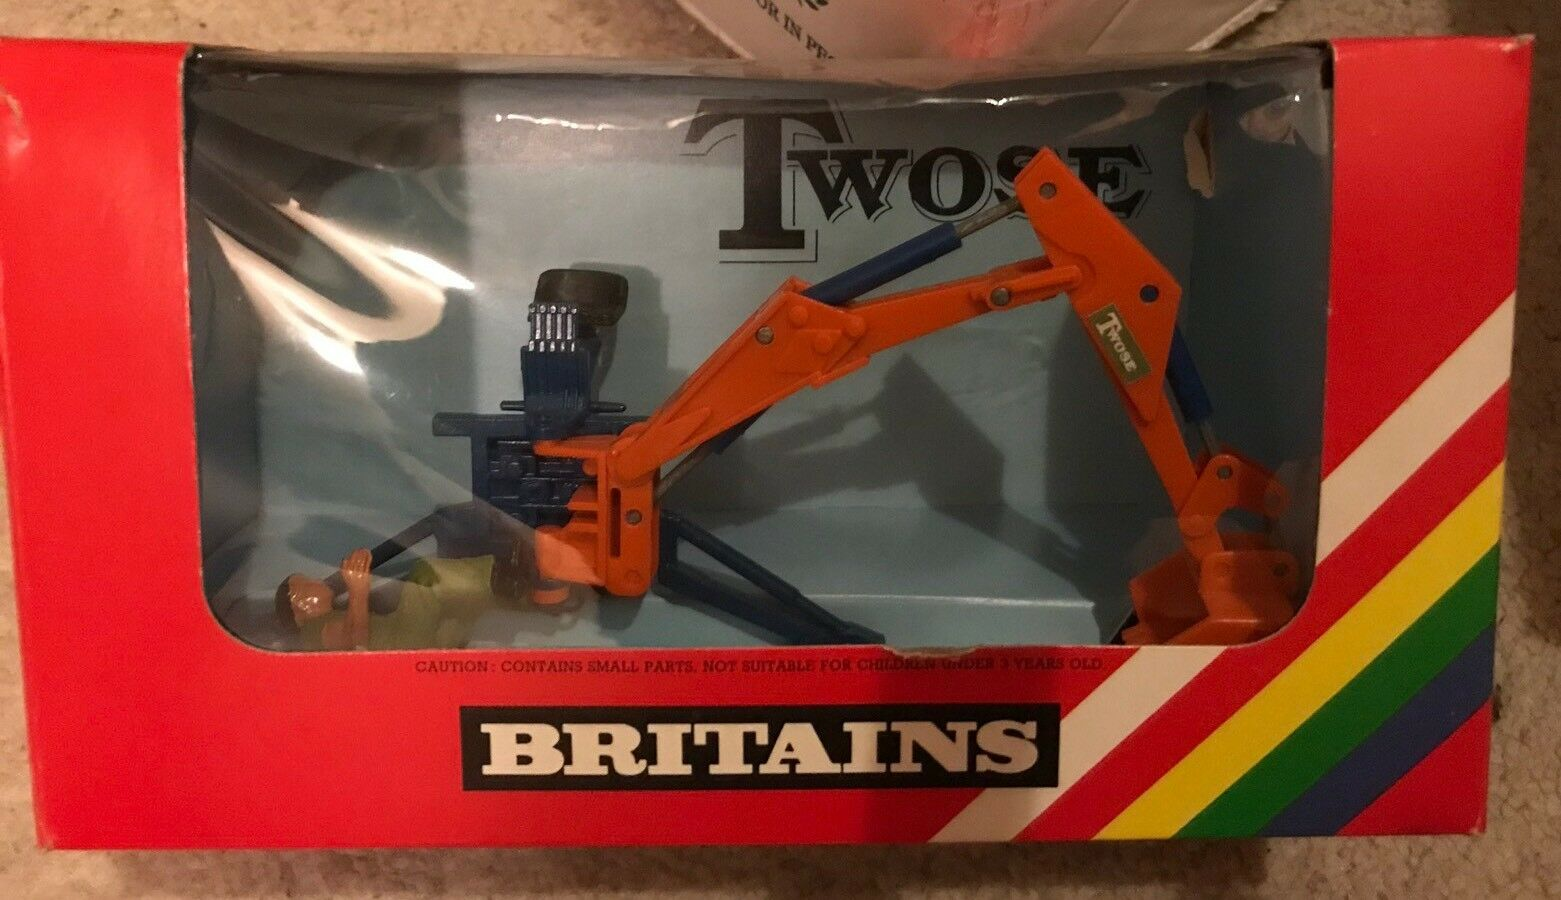 9536 Britains Twose Rear Mounted Digger 1 32 scale Boxed